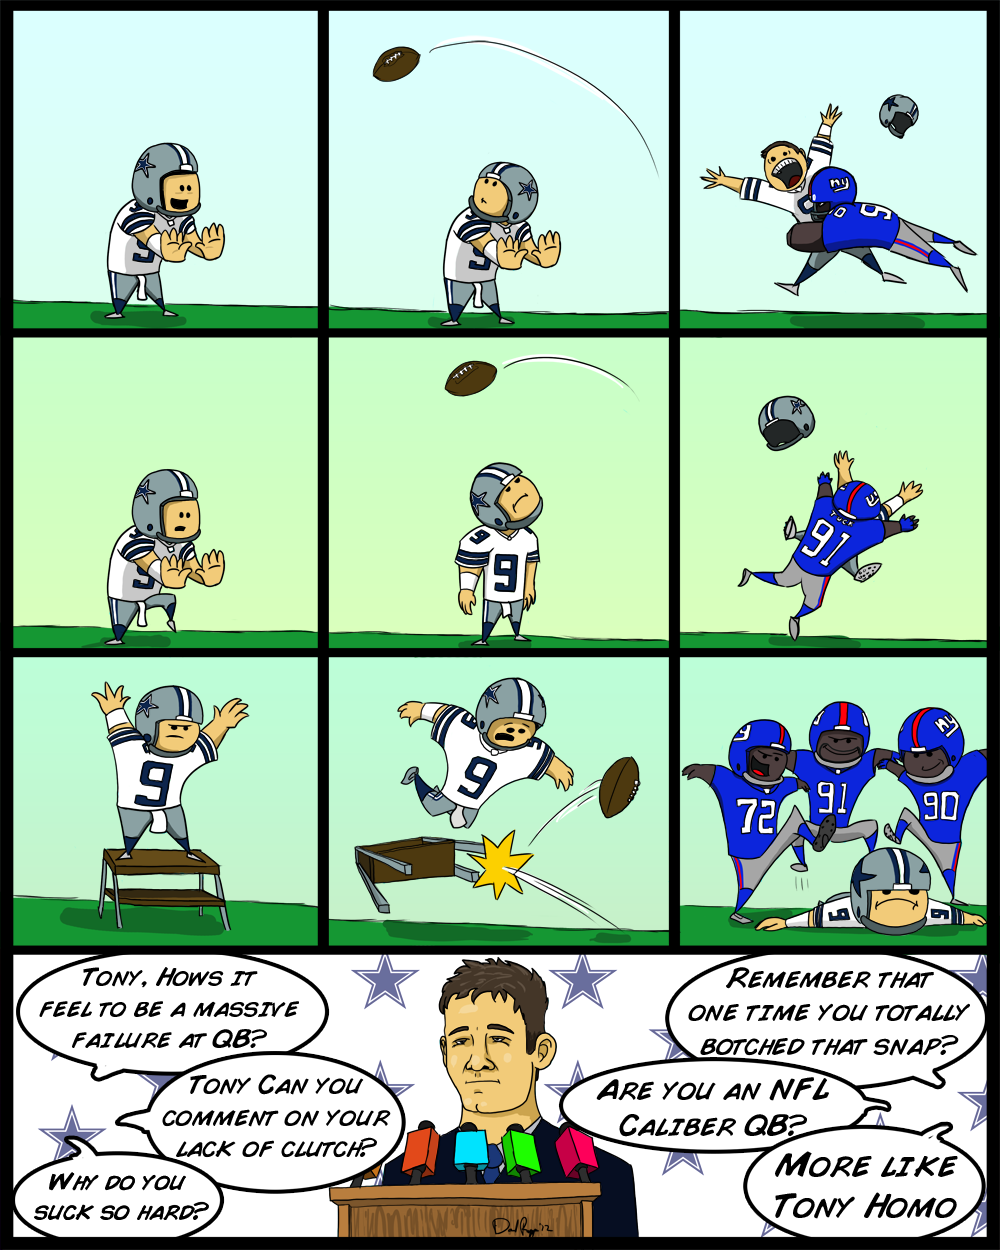 Tony Romo is actually a great QB